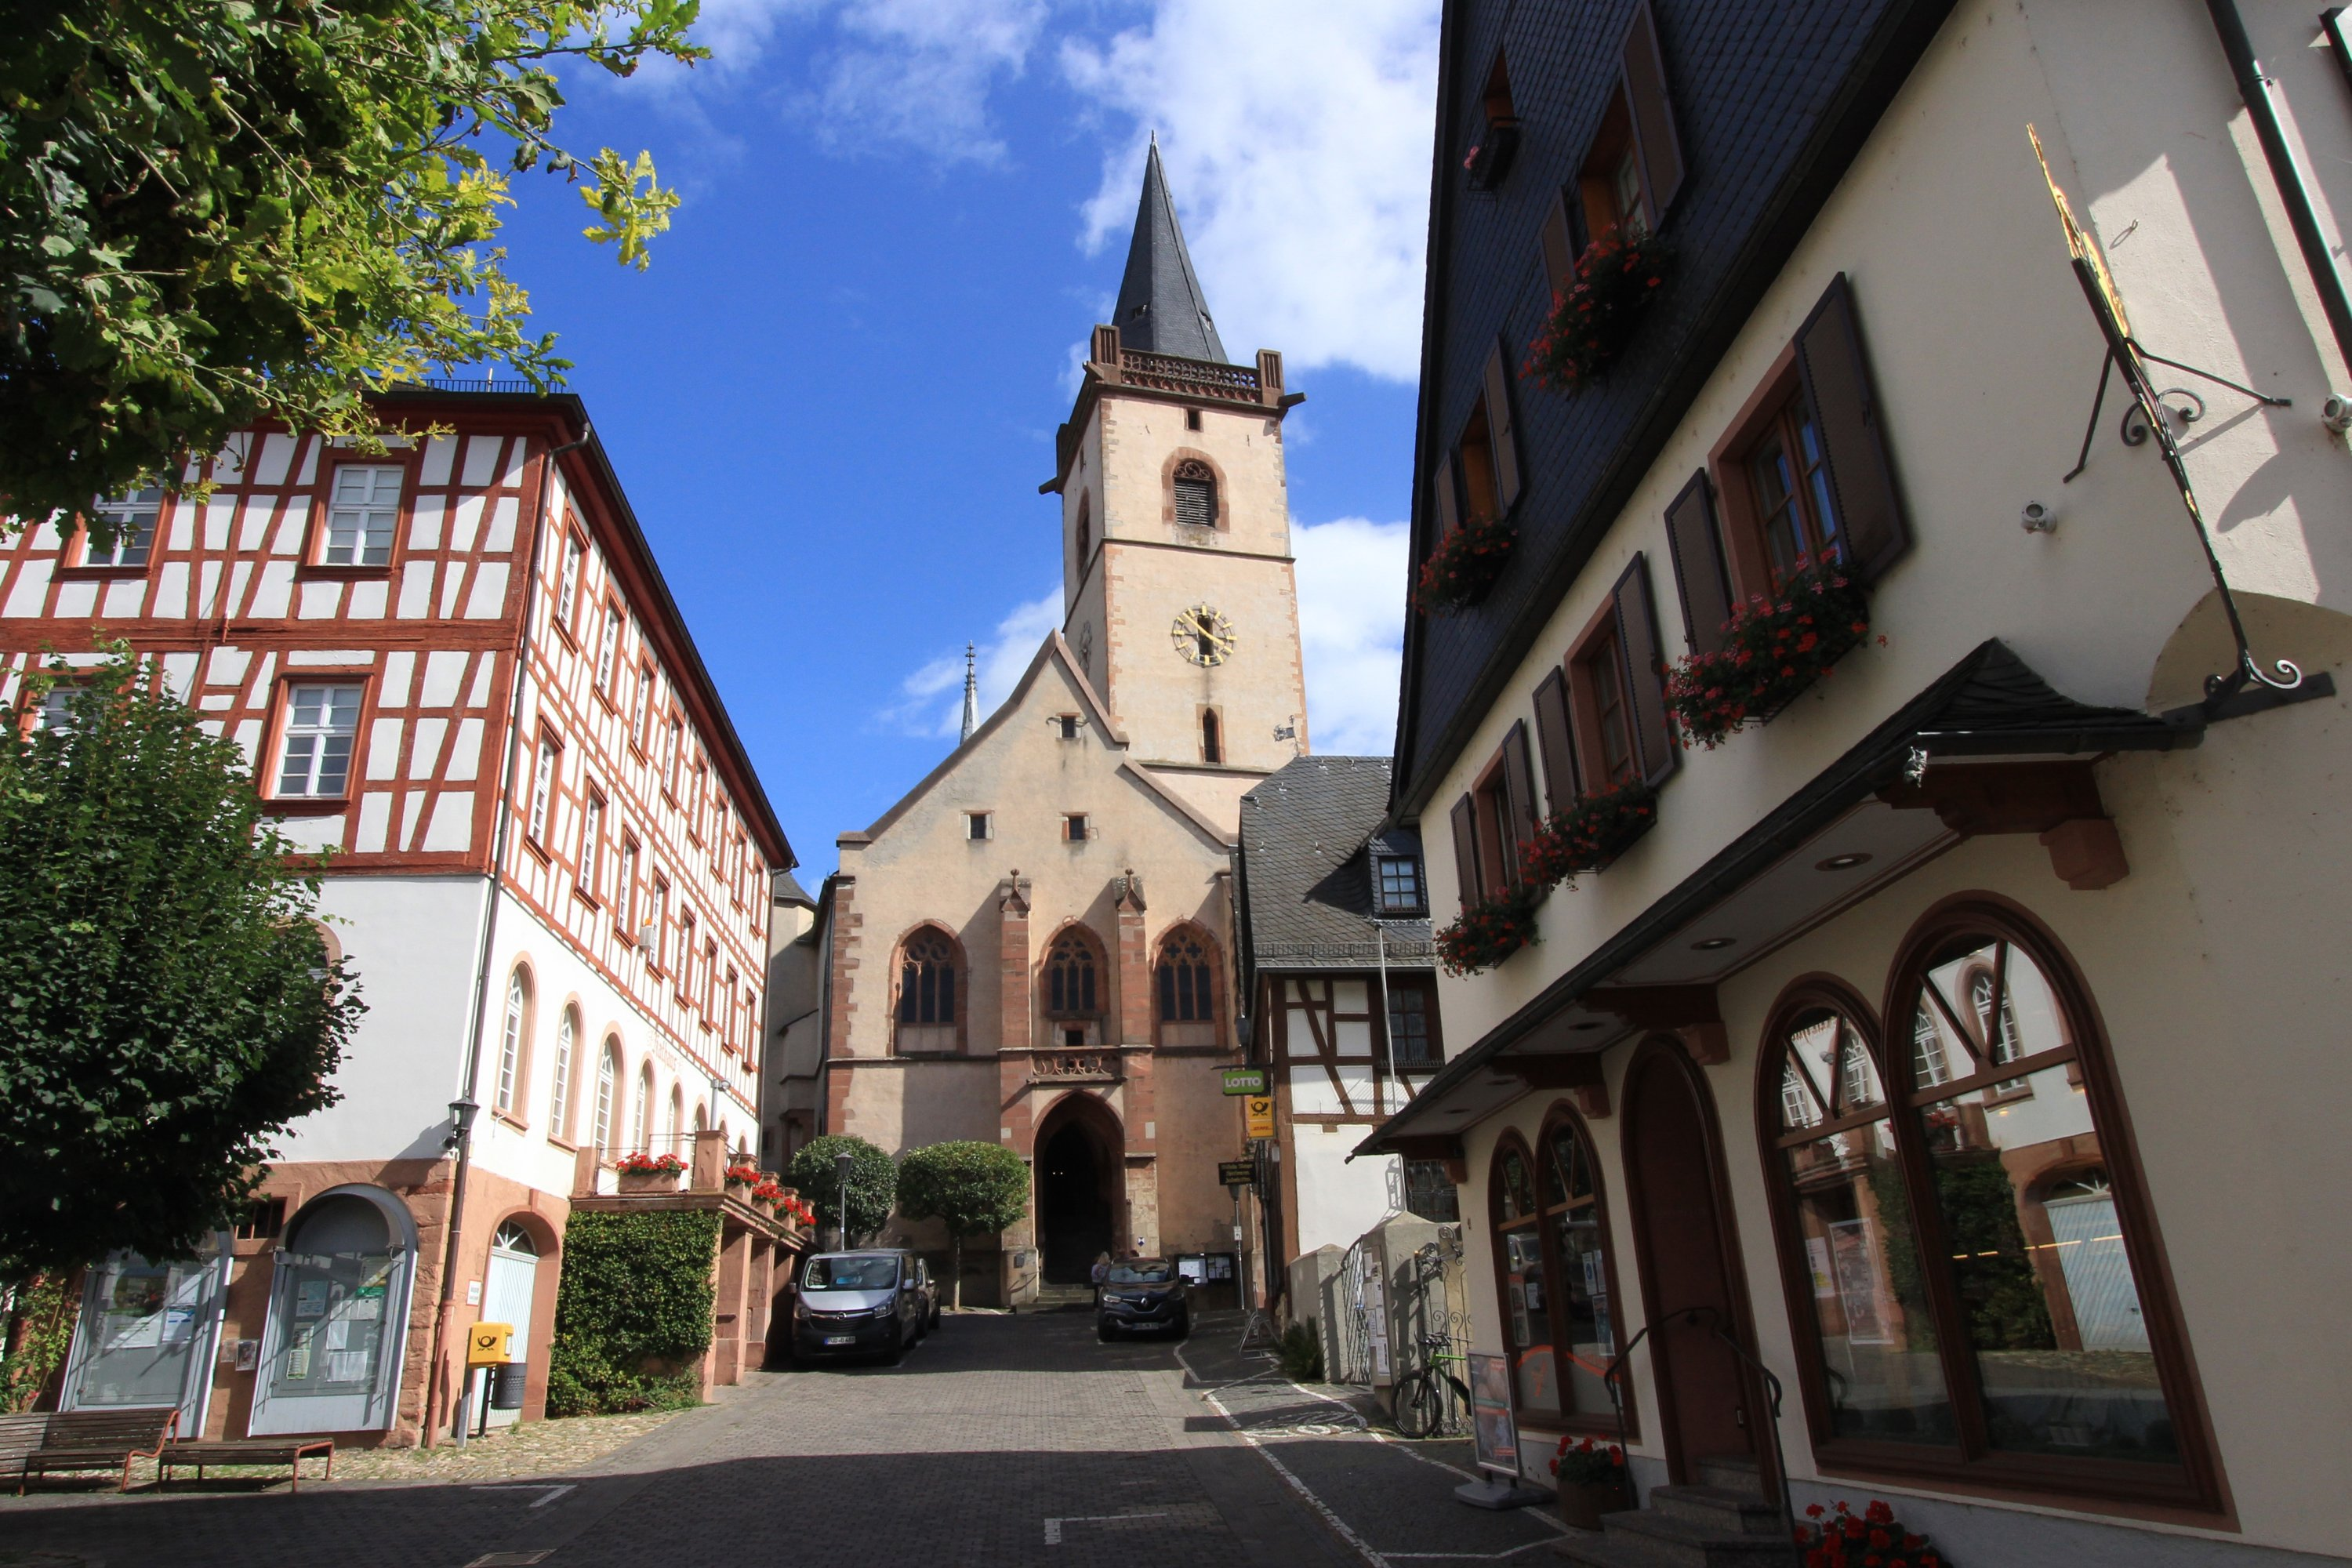 In Lorch, it is worth taking a detour to the market square with its pretty, half-timbered buildings and old church. (DPA Photo)